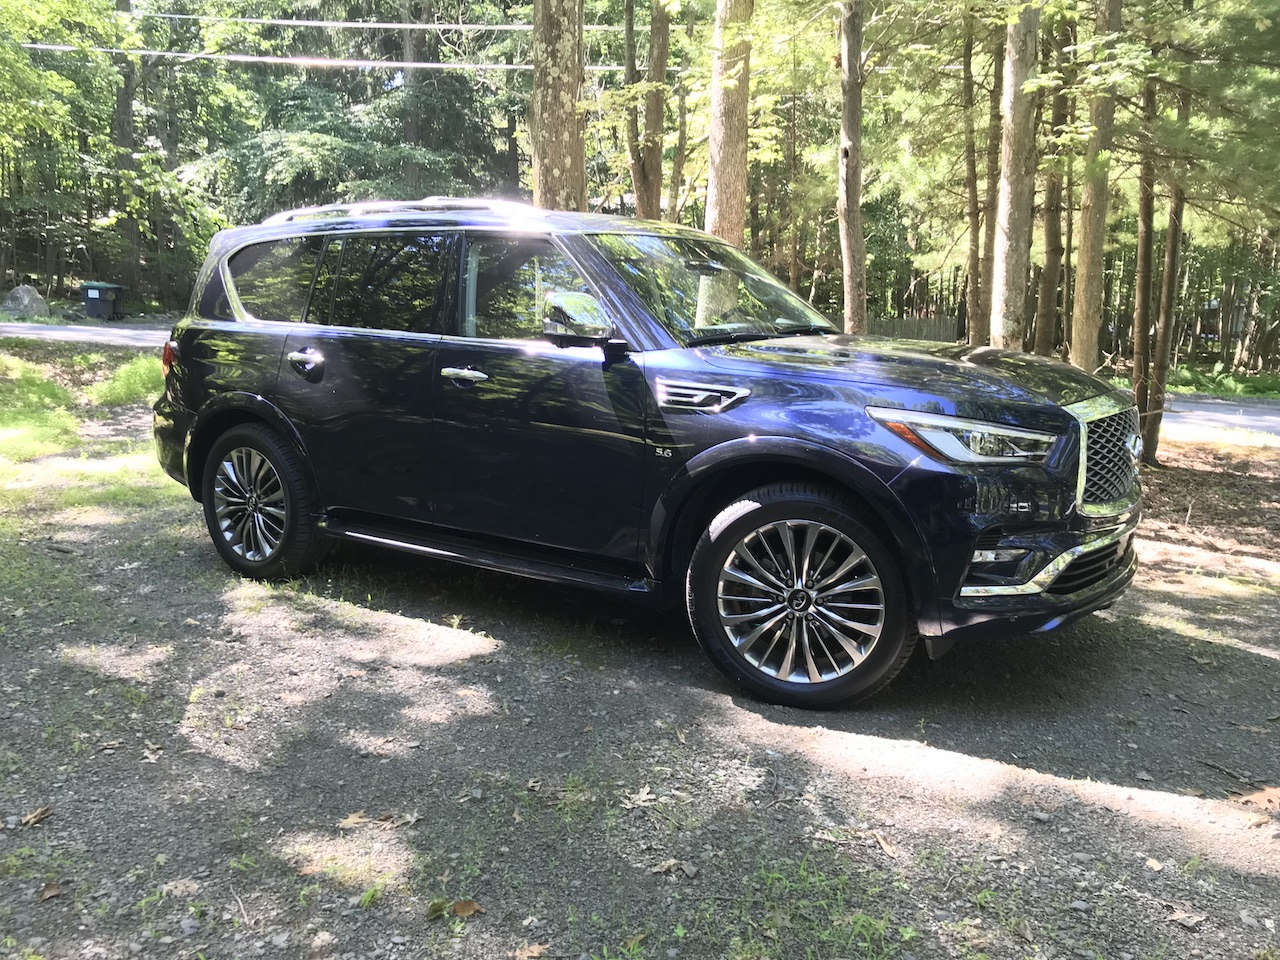 2018 Infiniti QX80 Test Drive Review: Newly Handsome & Surprisingly